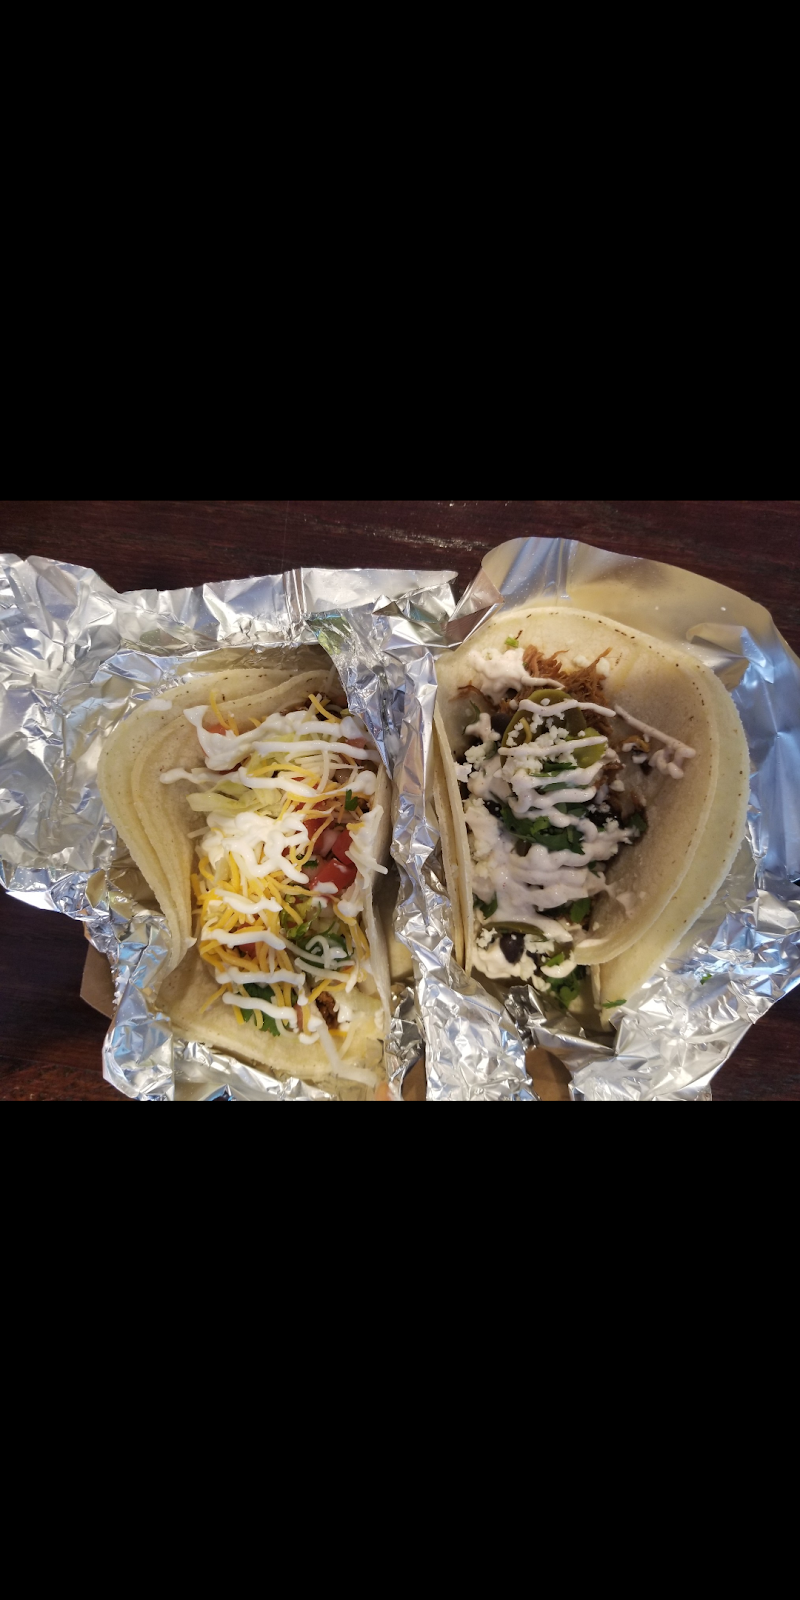 Taco del campus | restaurant | 412 Semple St, Pittsburgh, PA 15213, USA | 4122242823 OR +1 412-224-2823